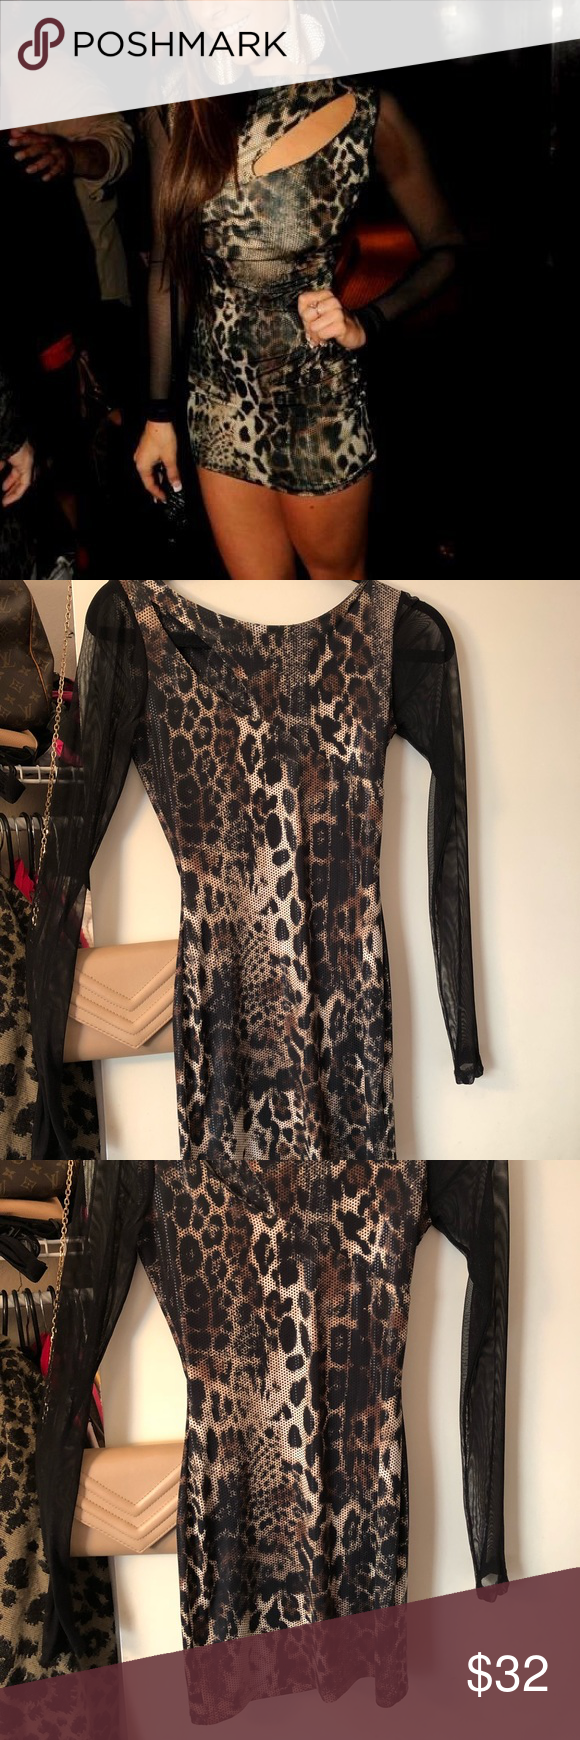 d73f7384476 Leopard   Cheetah Print Dress w  Sheer Sleeves - S Leopard   Cheetah Print  Stretchy Bodycon Mini Dress with Sexy Sheer Sleeves!